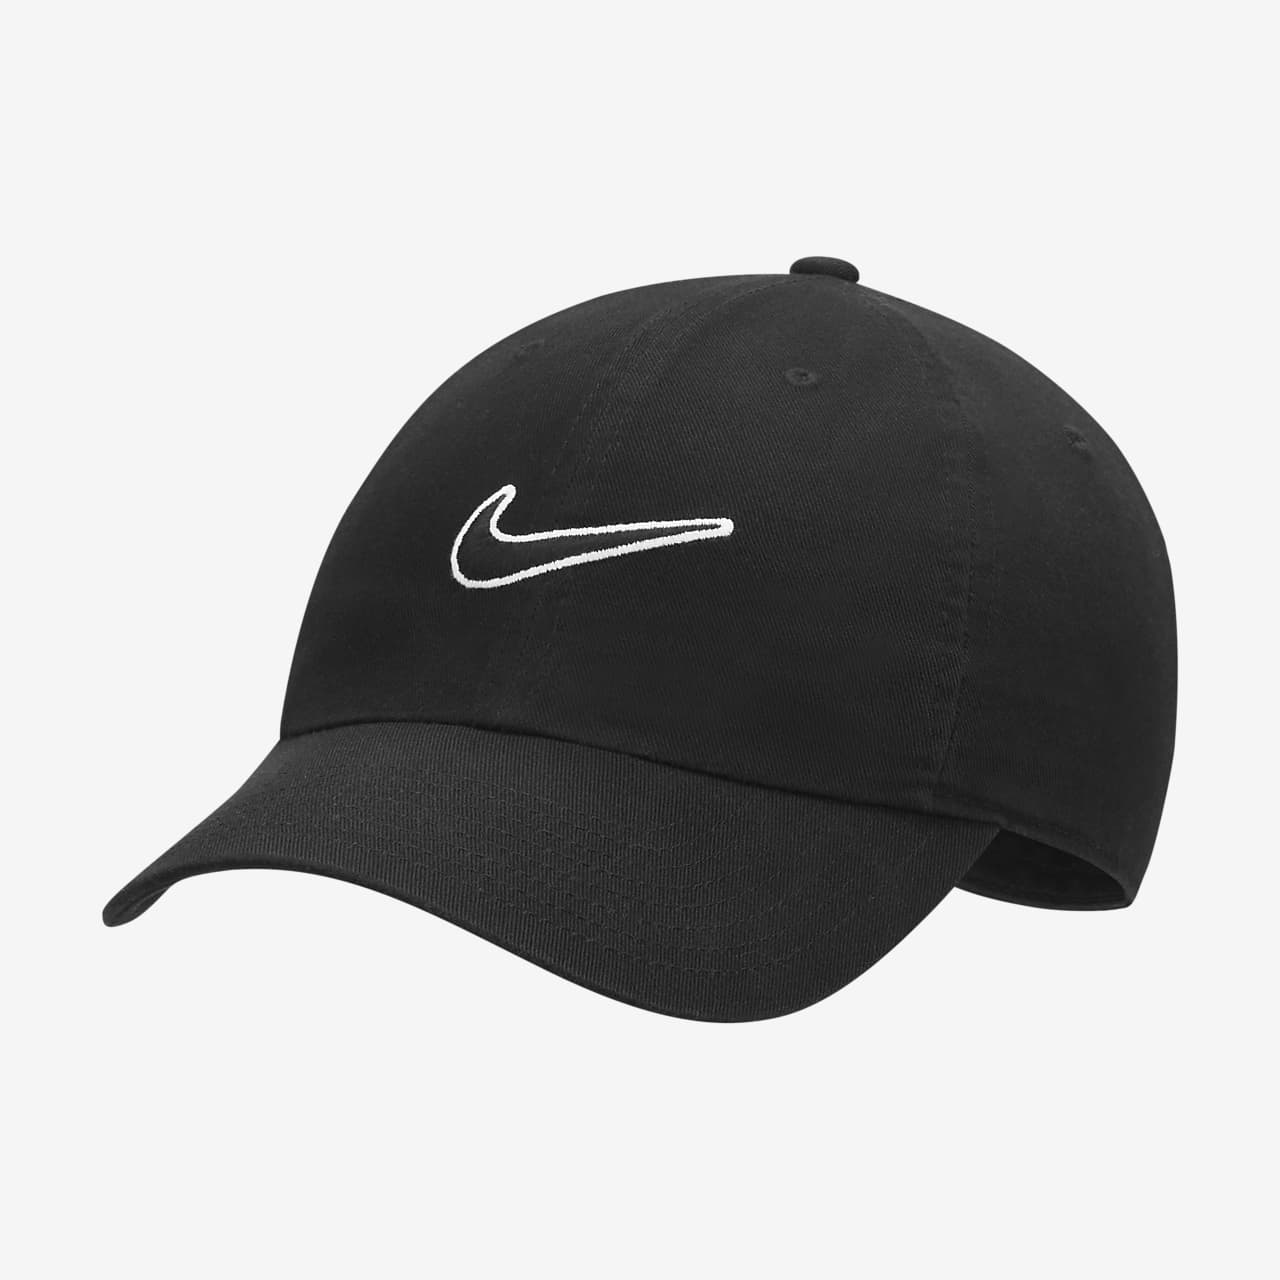 ea426b0f601 Nike Heritage 86 Essential Swoosh Adjustable Hat. Nike.com GB